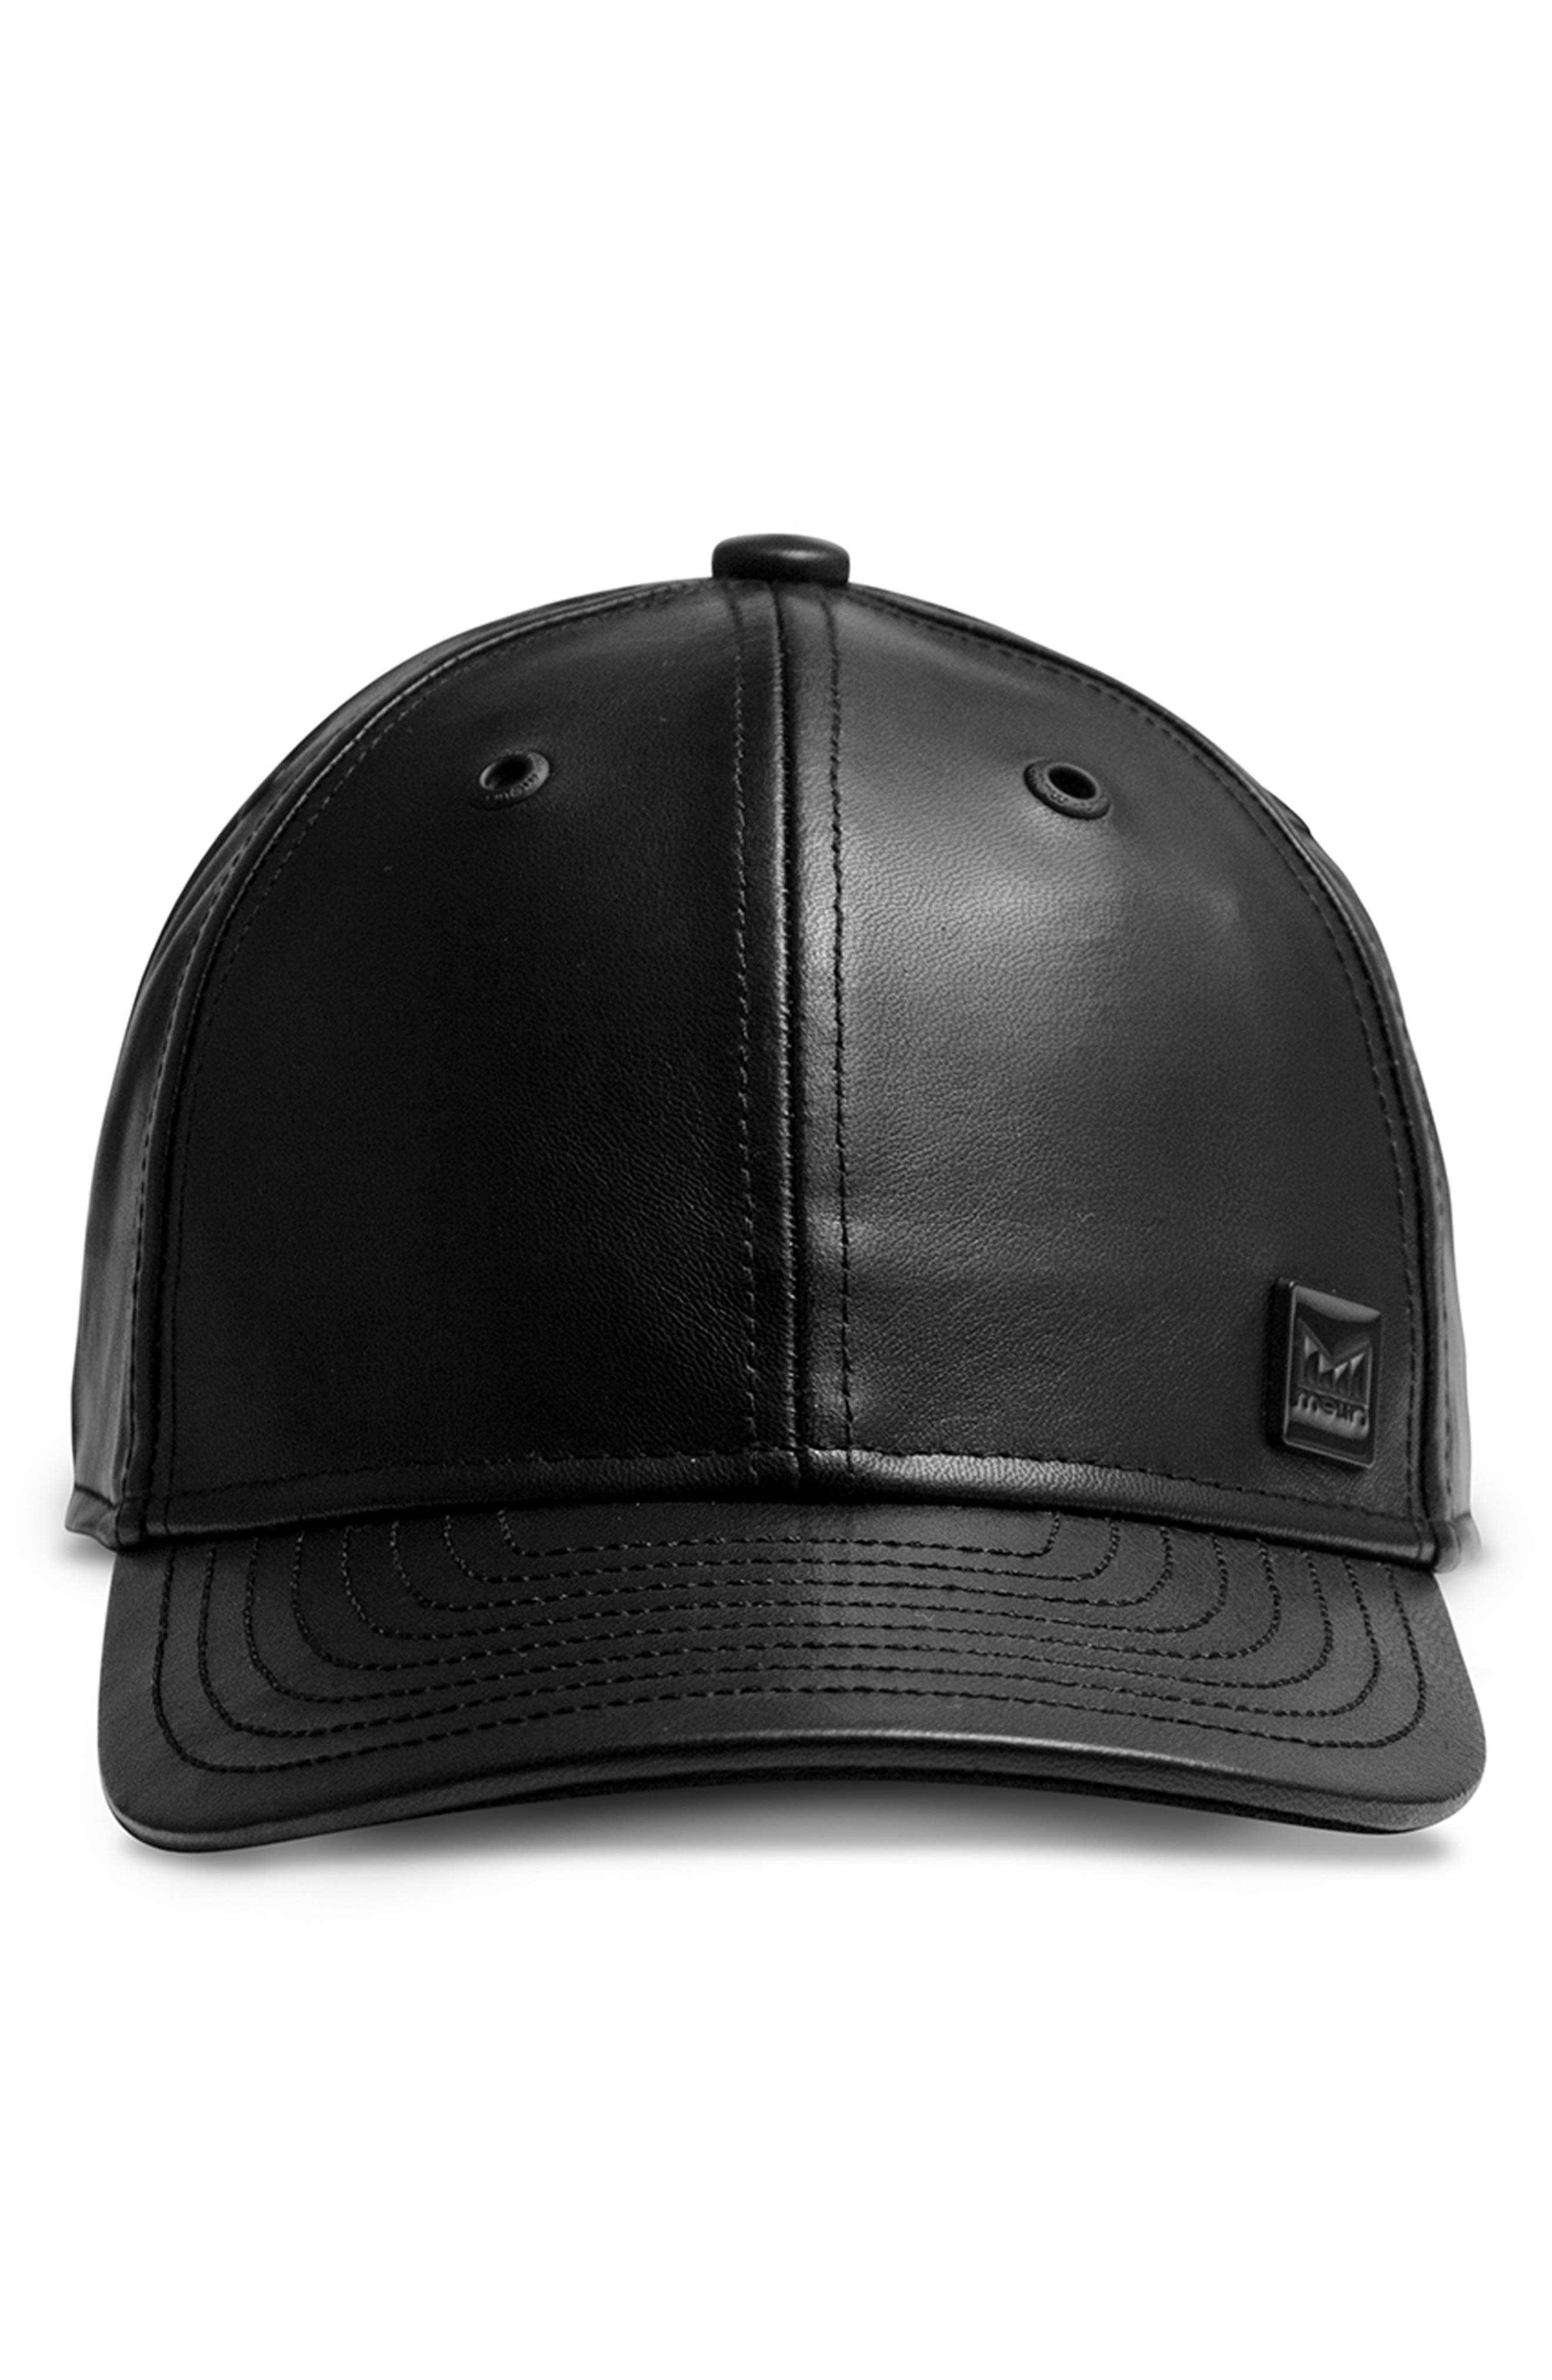 Voyage Elite Leather Ball Cap,                             Alternate thumbnail 2, color,                             BLACK